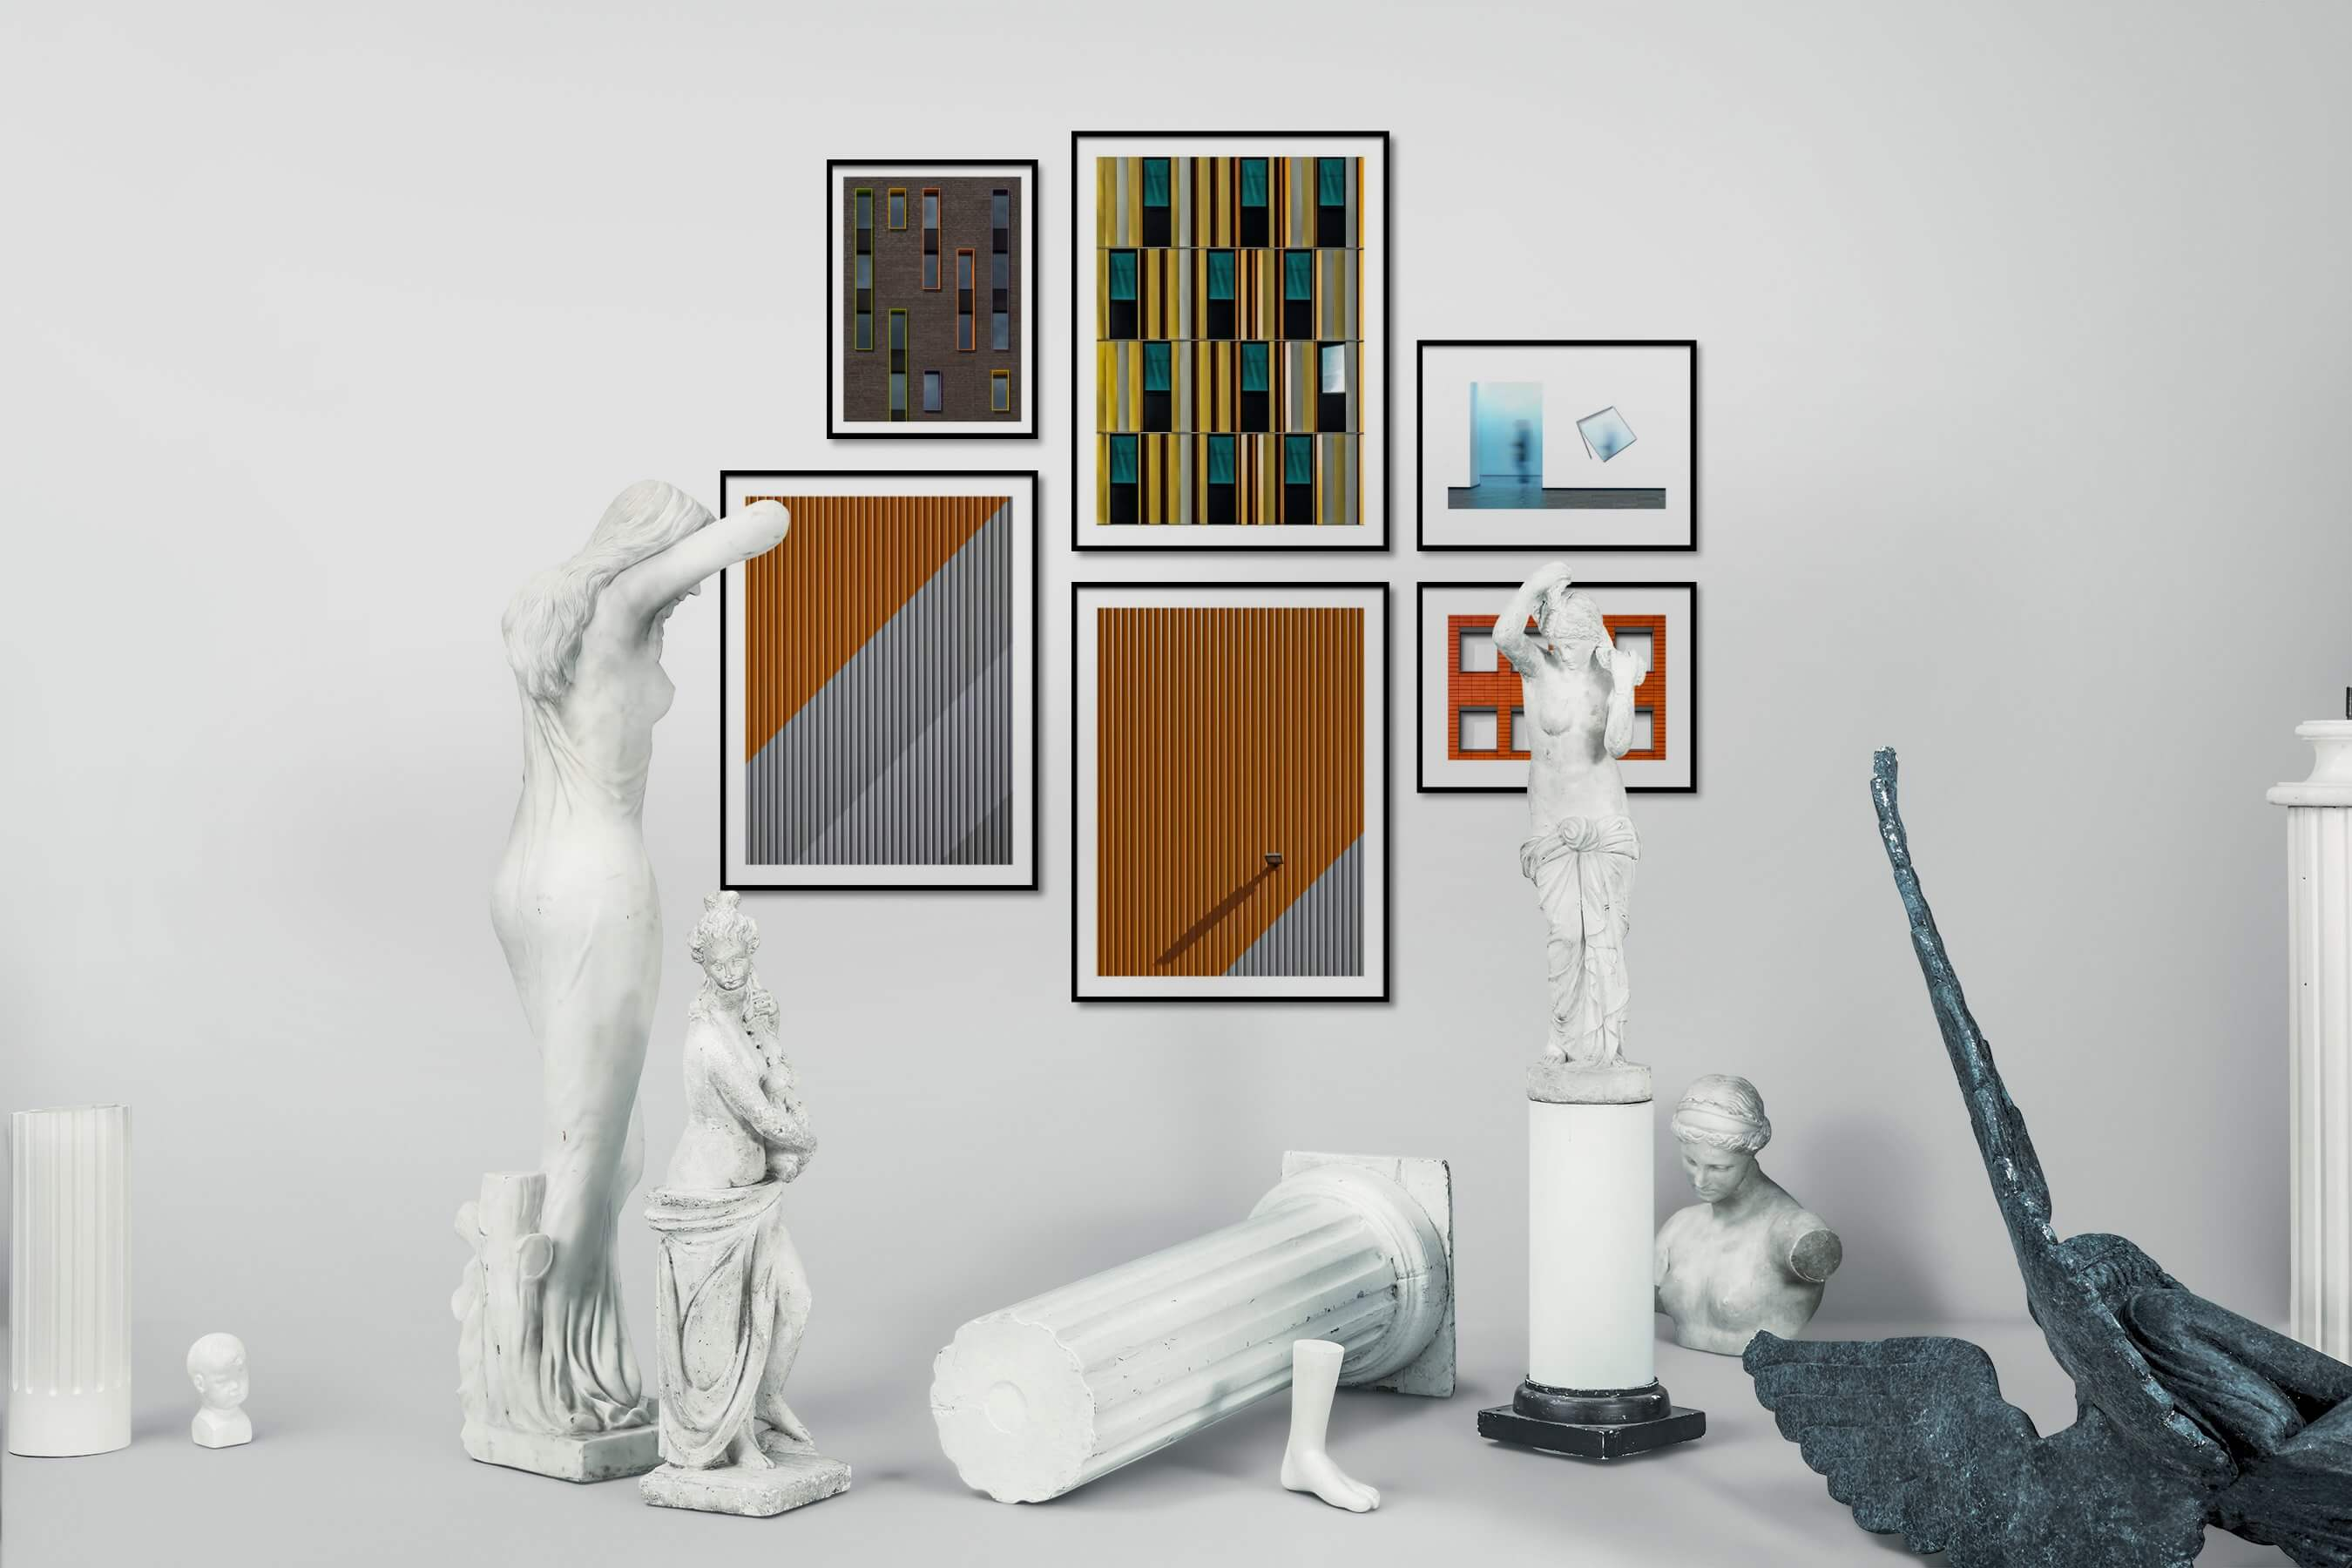 Gallery wall idea with six framed pictures arranged on a wall depicting For the Moderate, For the Maximalist, City Life, Artsy, and For the Minimalist